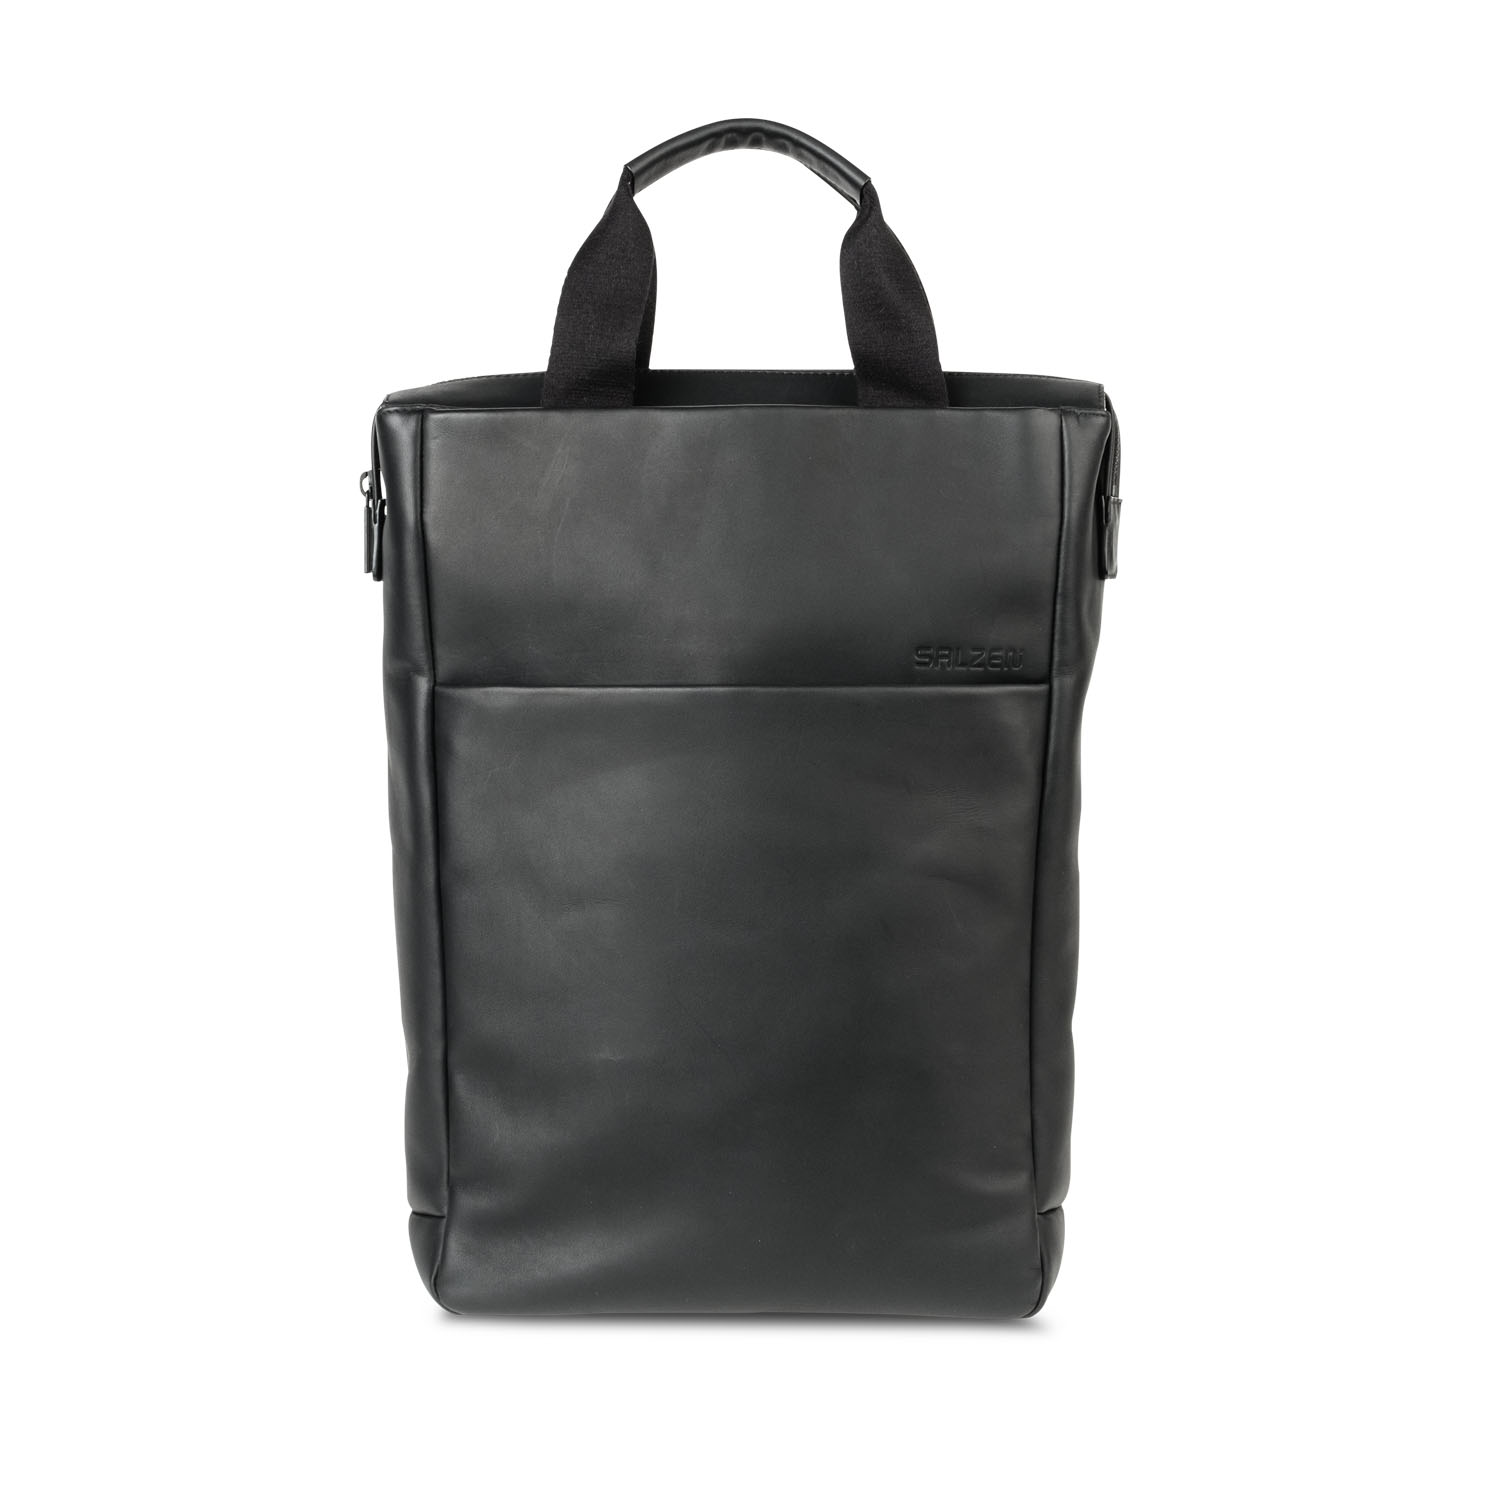 Salzen Redefined Classic Tote Backpack 15 d9136cfc22816